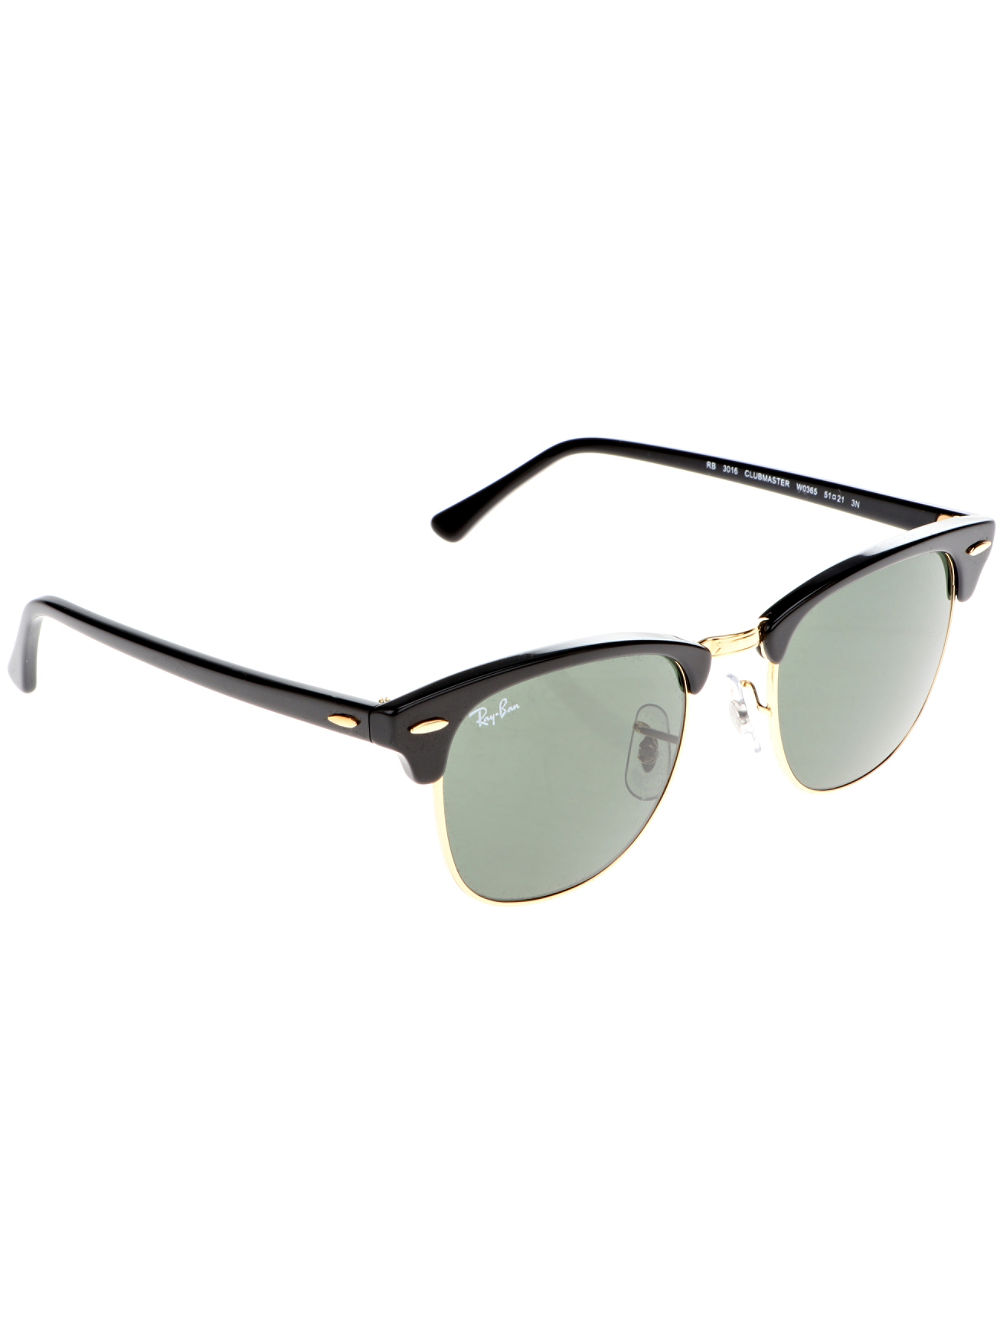 Clubmaster Ebony/Arista Iconic Sonnenbrille